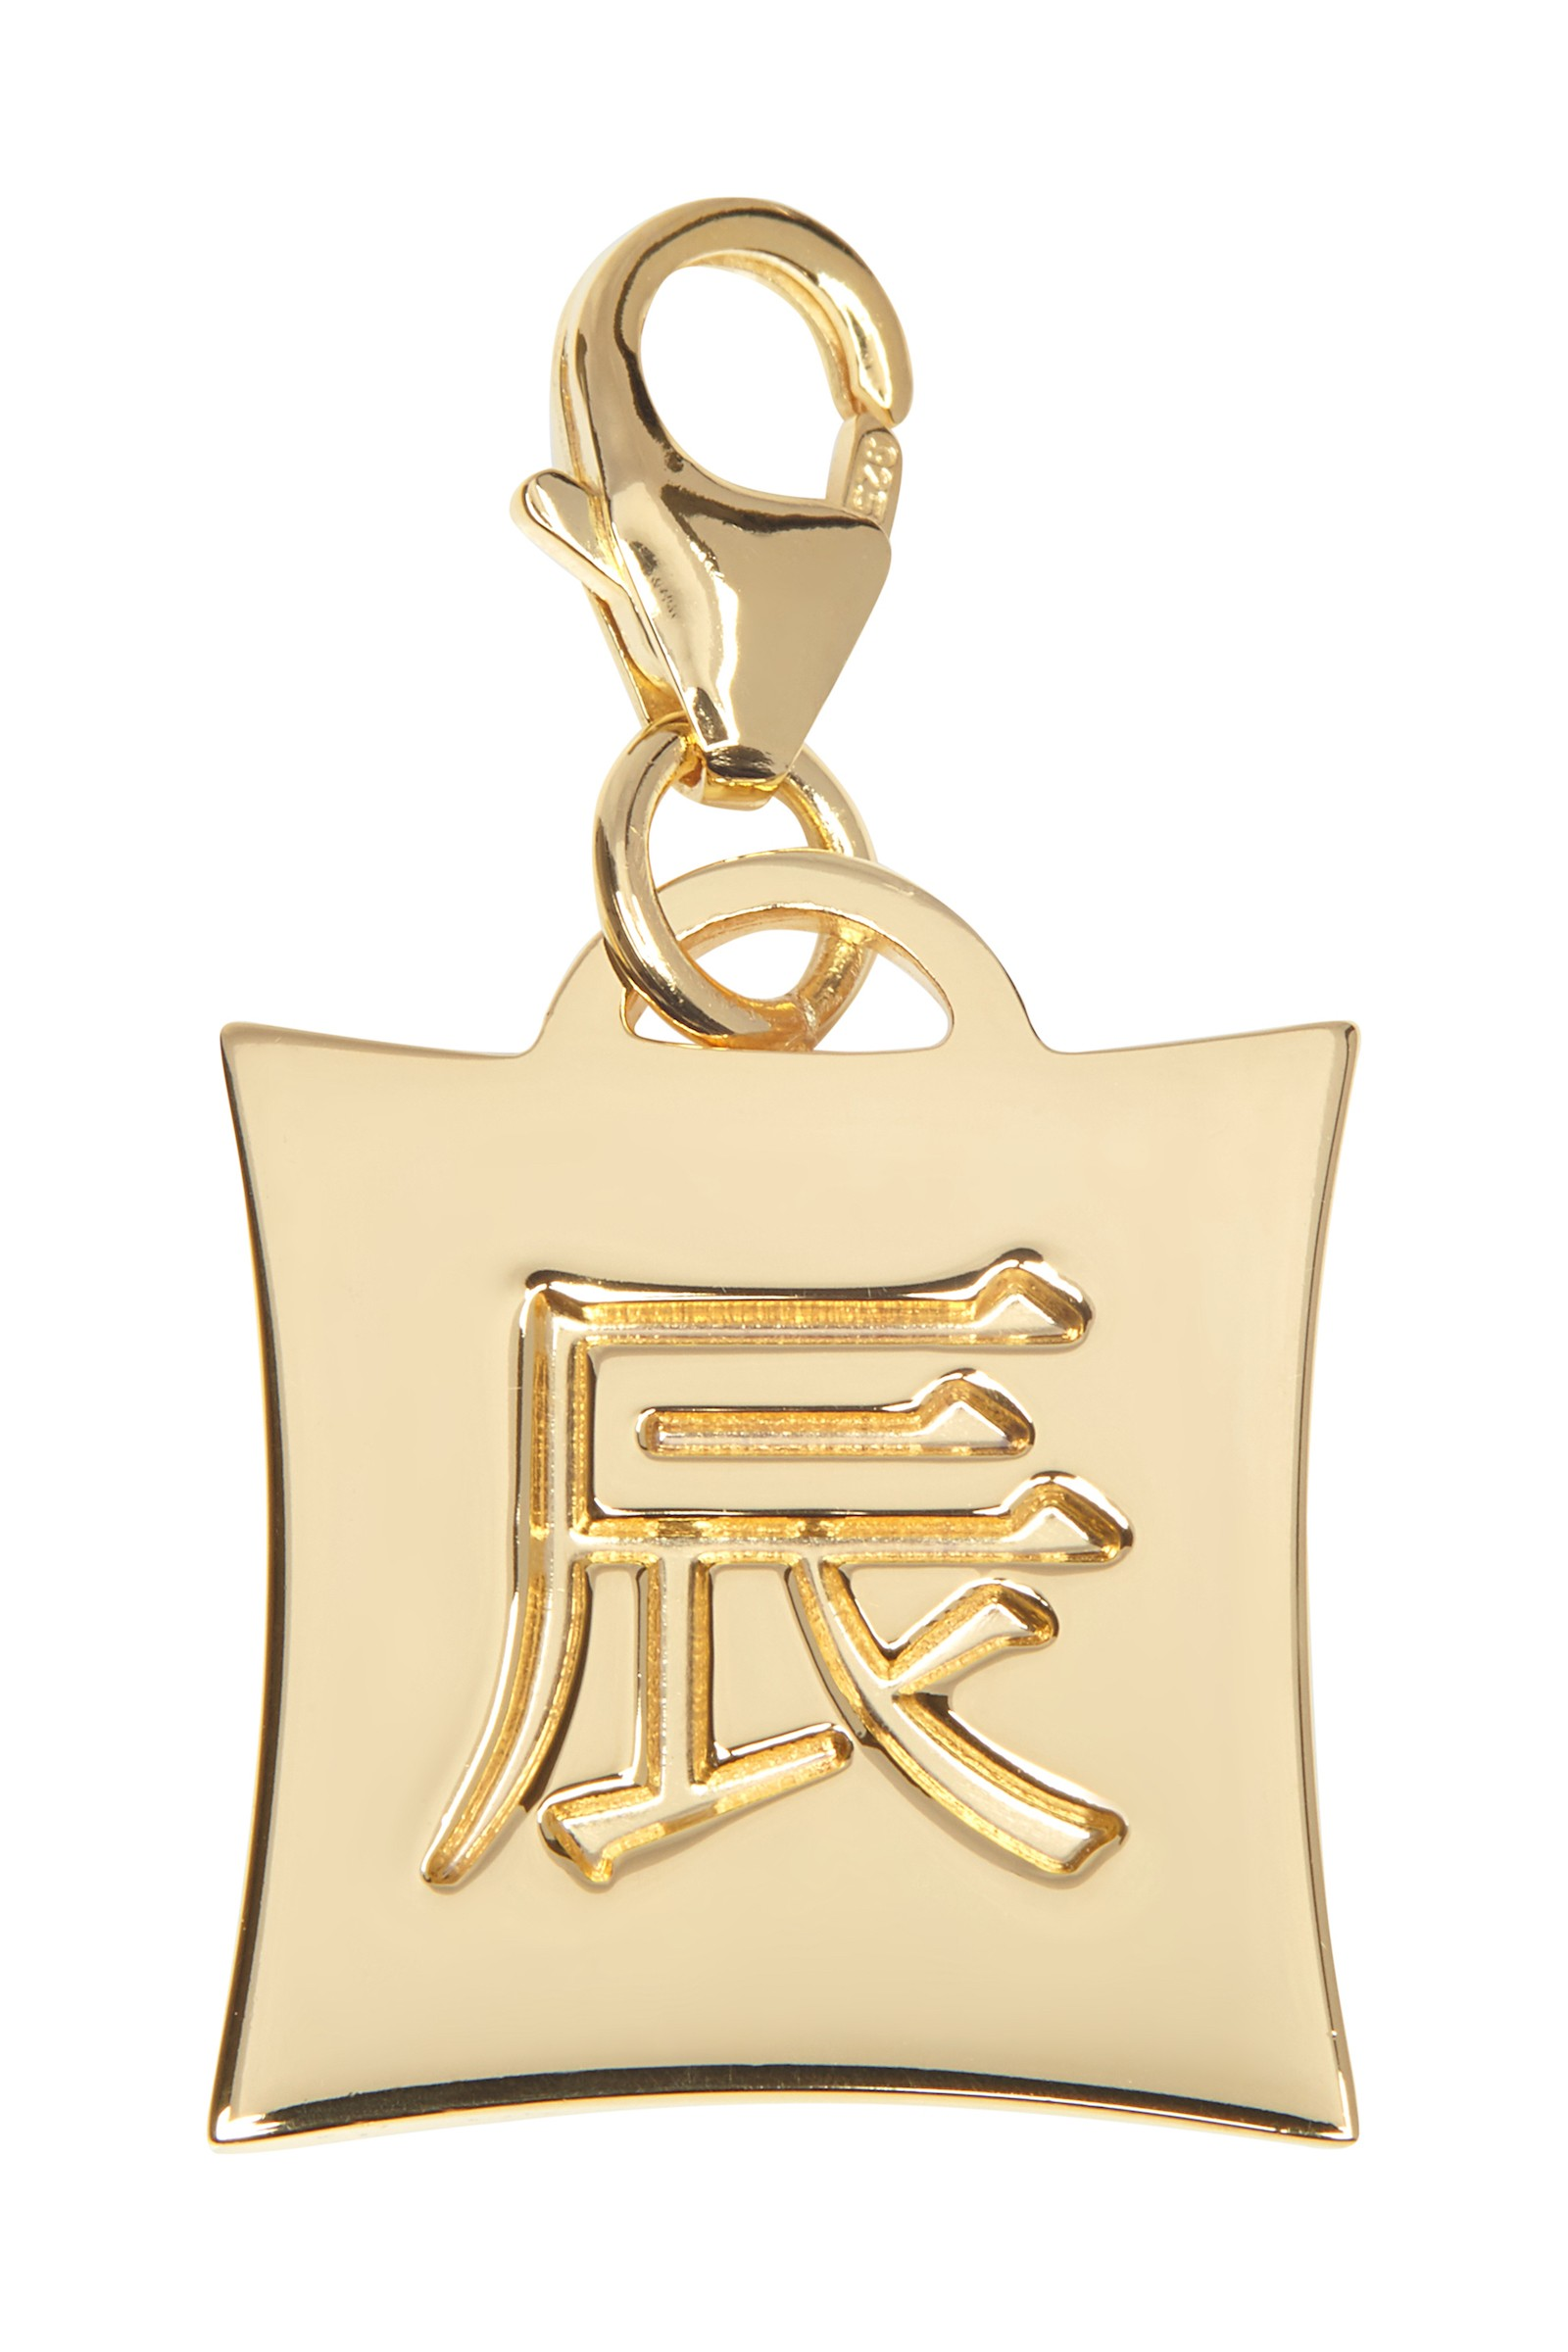 Japanese Star Sign Charm - Dragon - 18KT Gold Plated